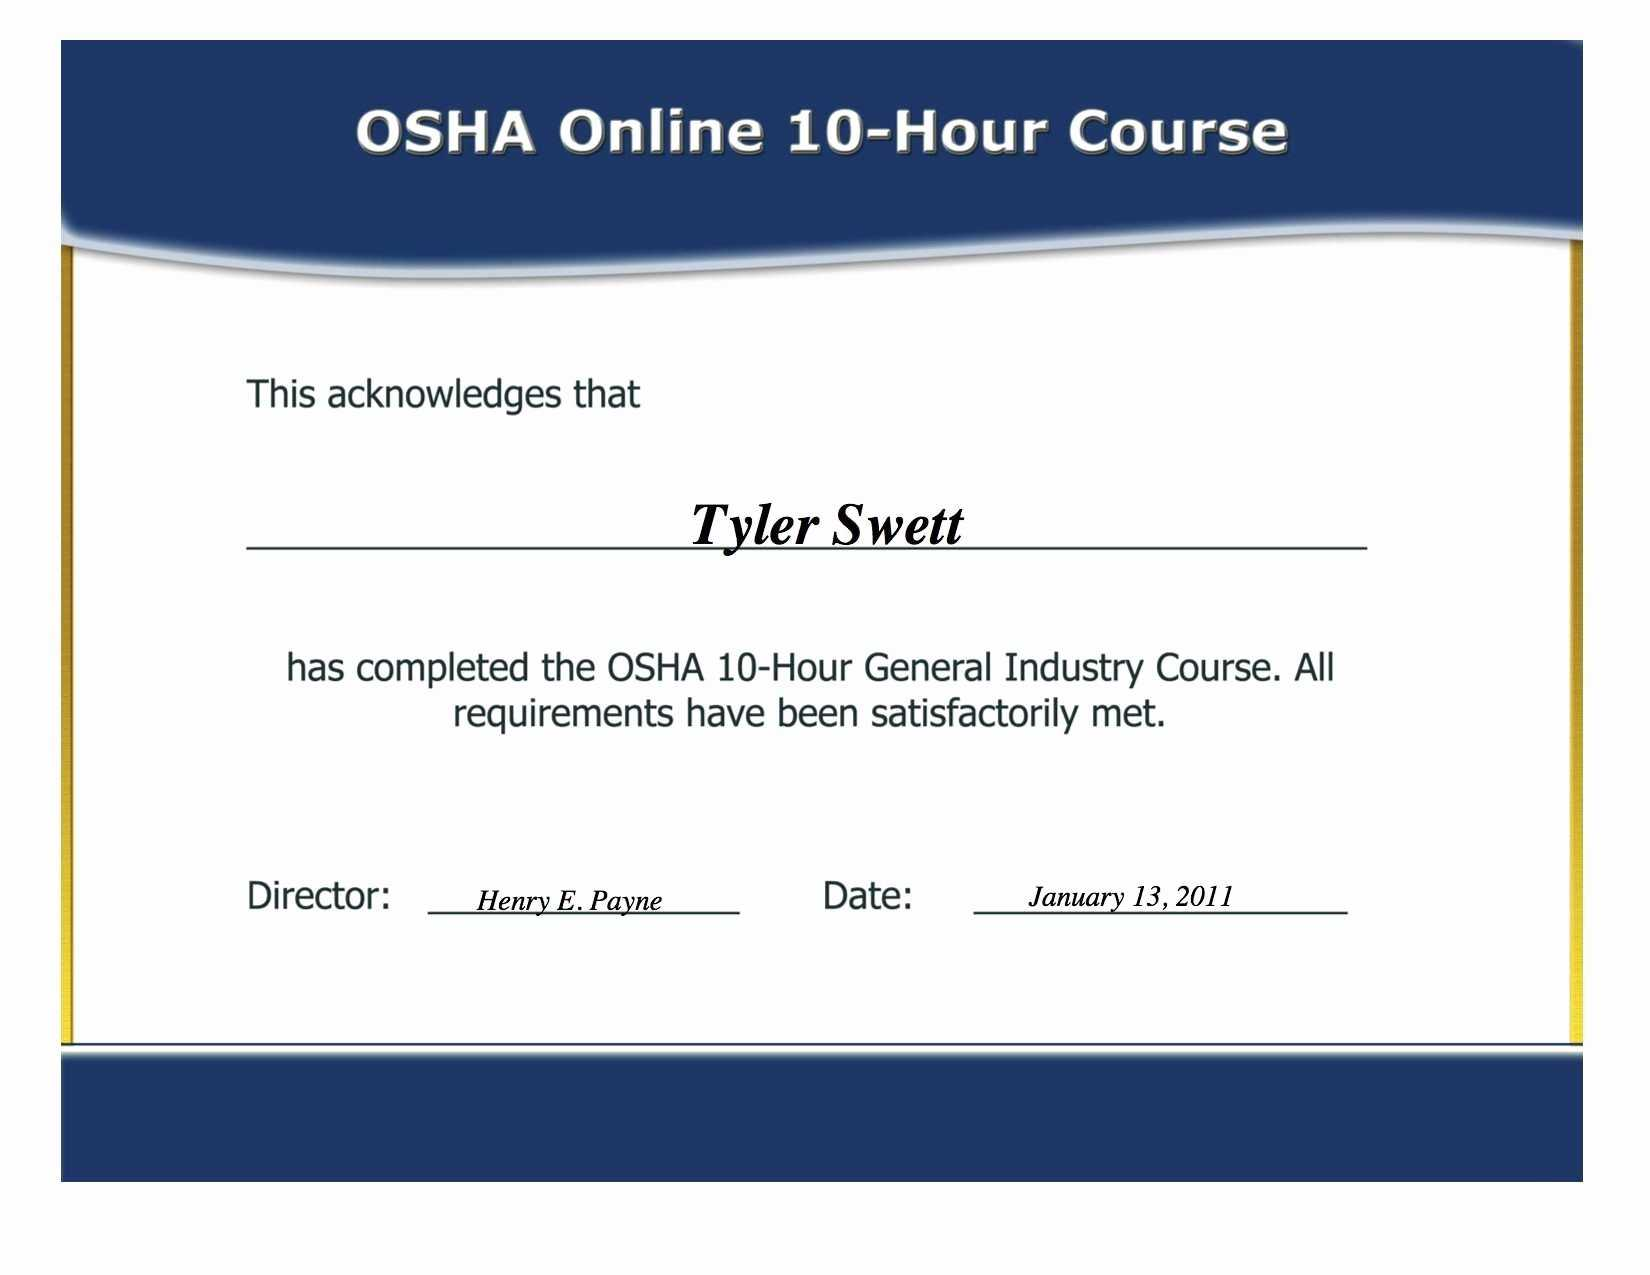 12 Certificate Of Training Template Free   Business Letter within Osha 10 Card Template